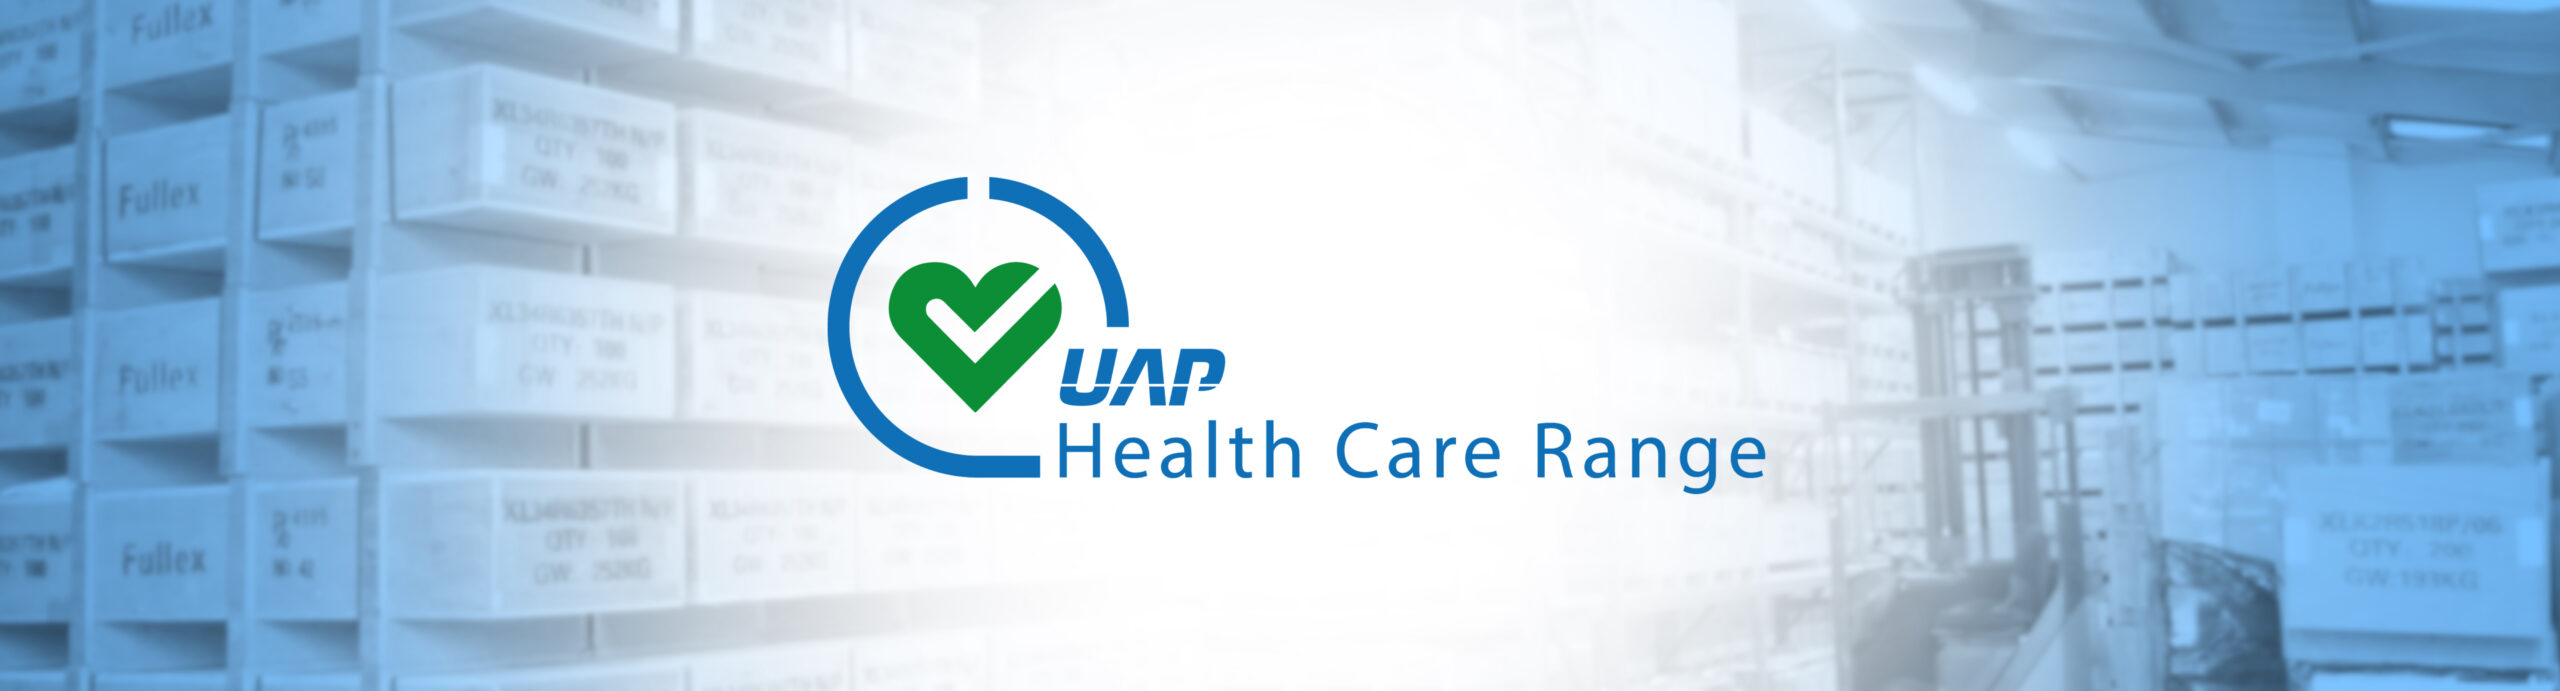 UAP Health Care Range - UAP Ltd - Door Hardware and Security Products